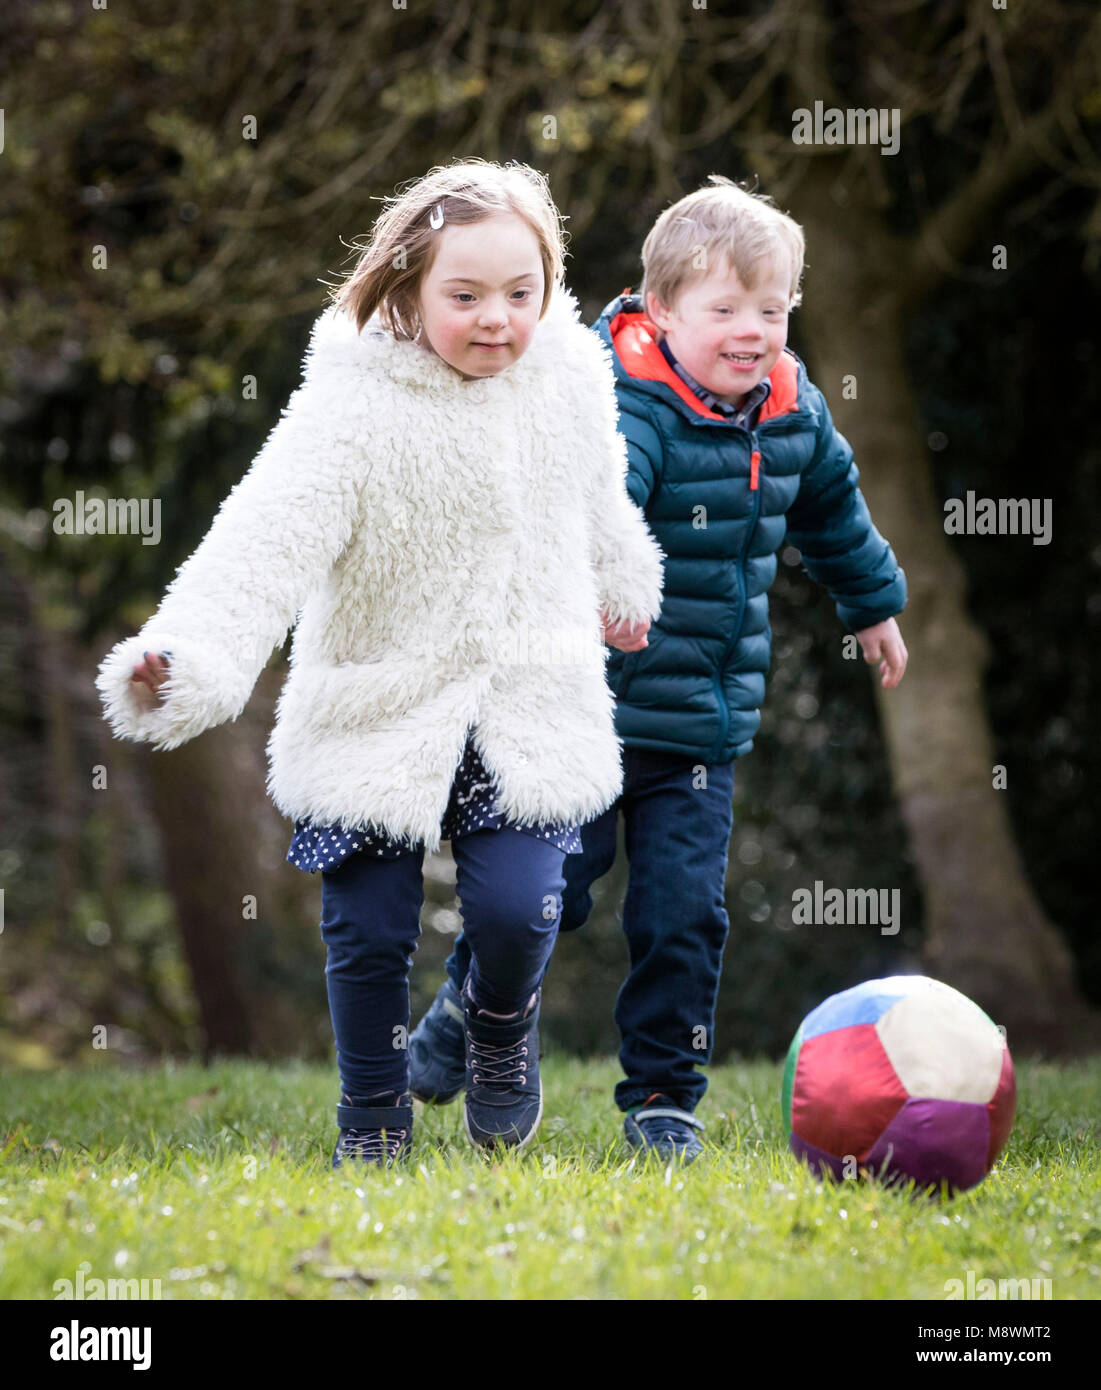 Thalia Harley-Roberts, eight, and Alby Davies, four, who both have Down syndrome play in Chapel Allerton Park in - Stock Image